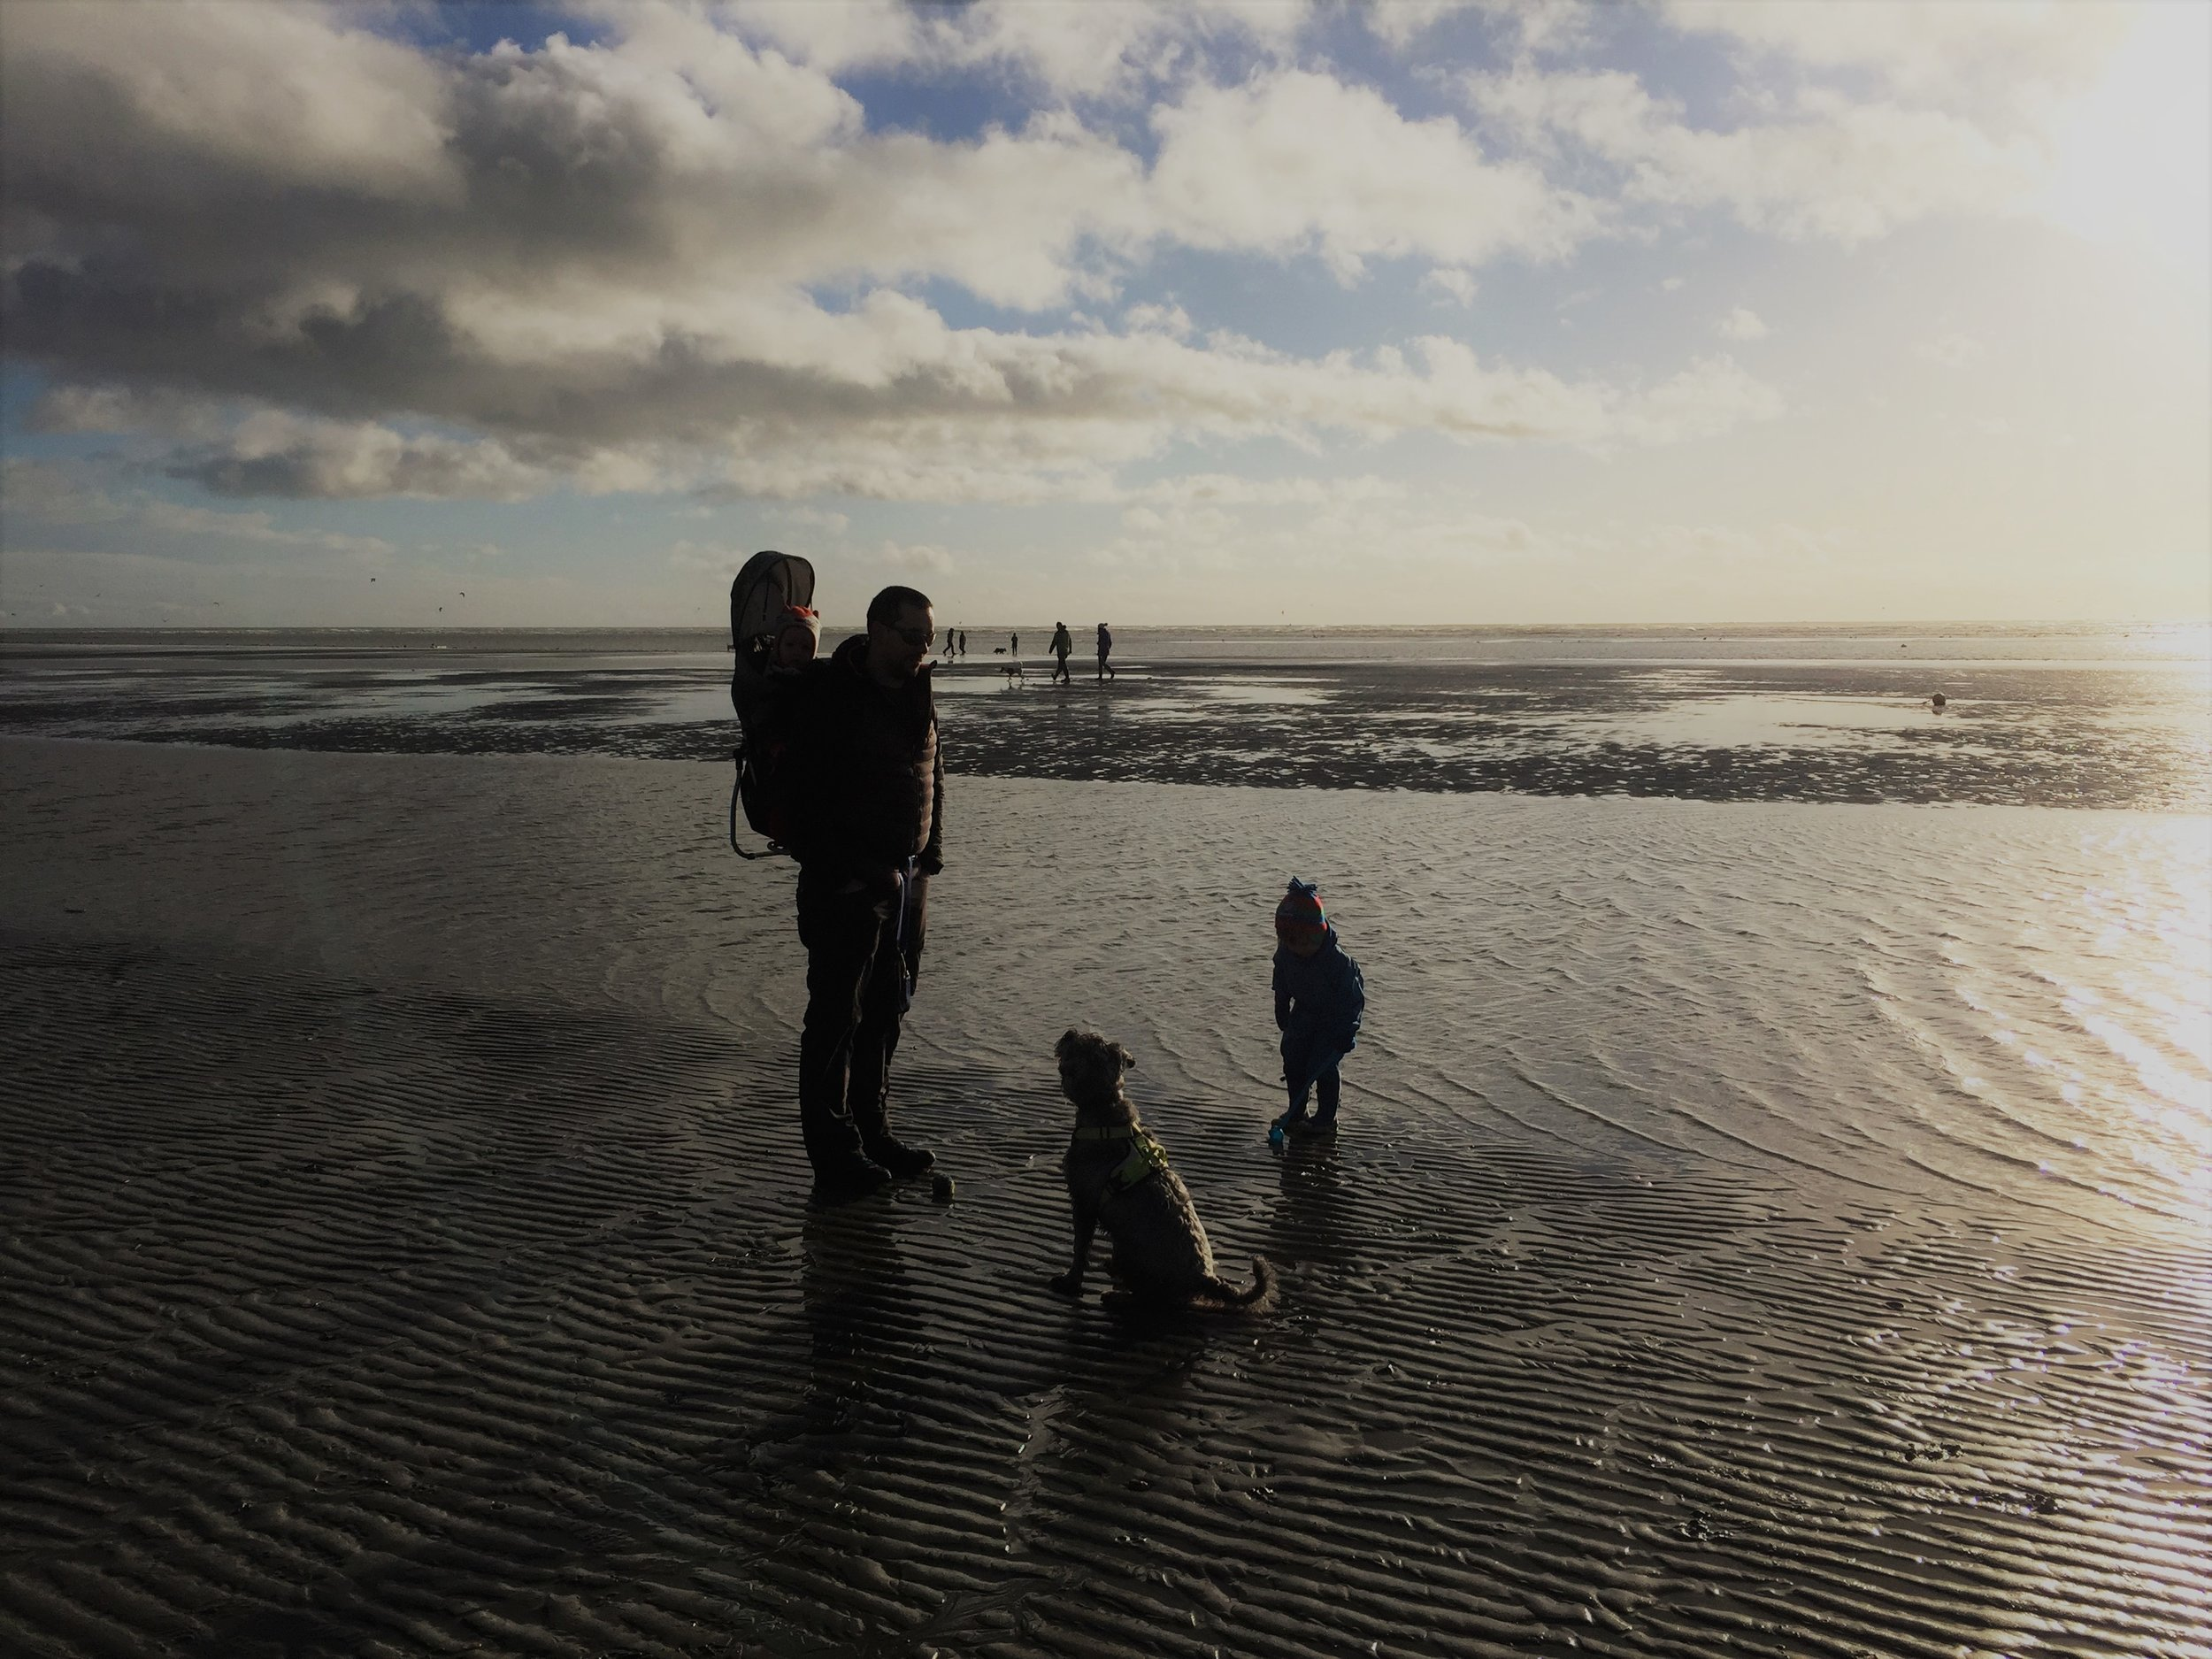 West Wittering Beach (South East England)